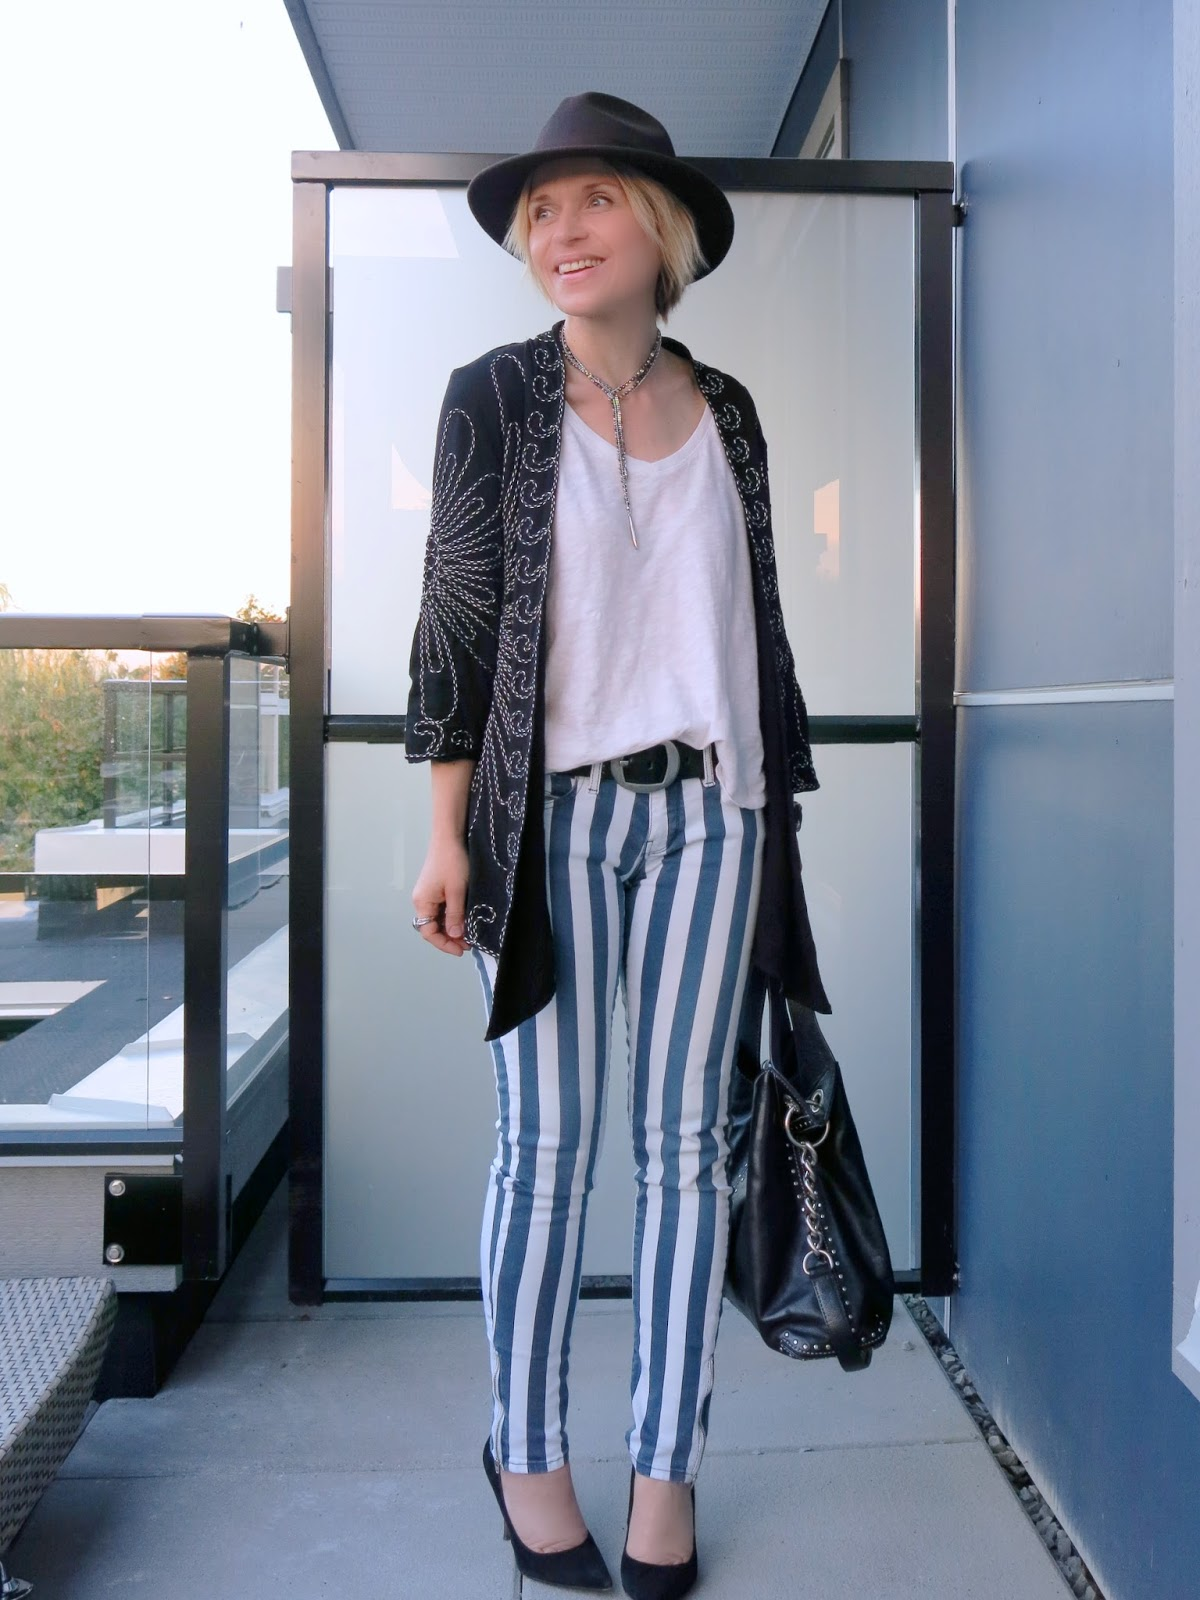 styling striped skinny jeans with an embroidered jacket, Sam Edelman pumps, and a fedora